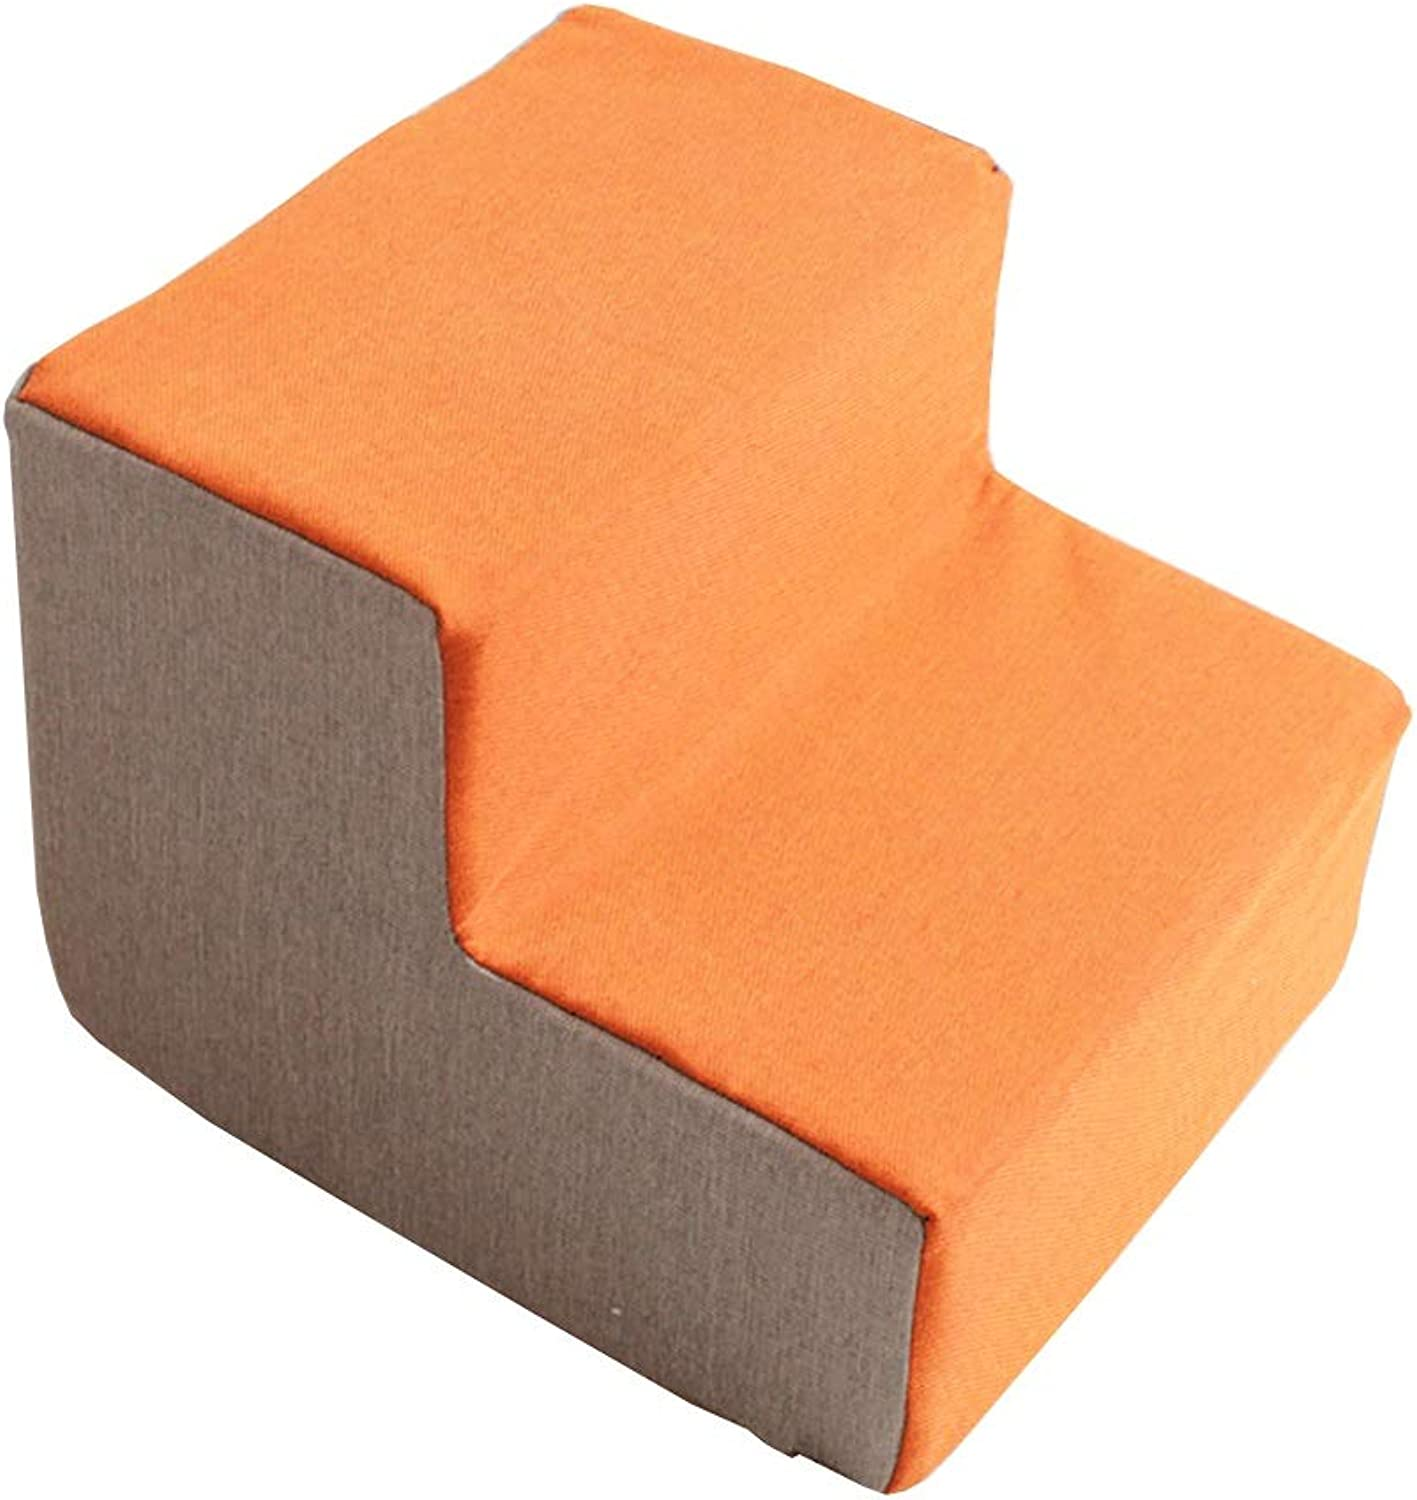 Pet steps Pet stairs orange Folding Pet Stairs, Dog Steps for Bed Sofa, Cat Climbing Frame with Washable Cover, 46×36×40cm